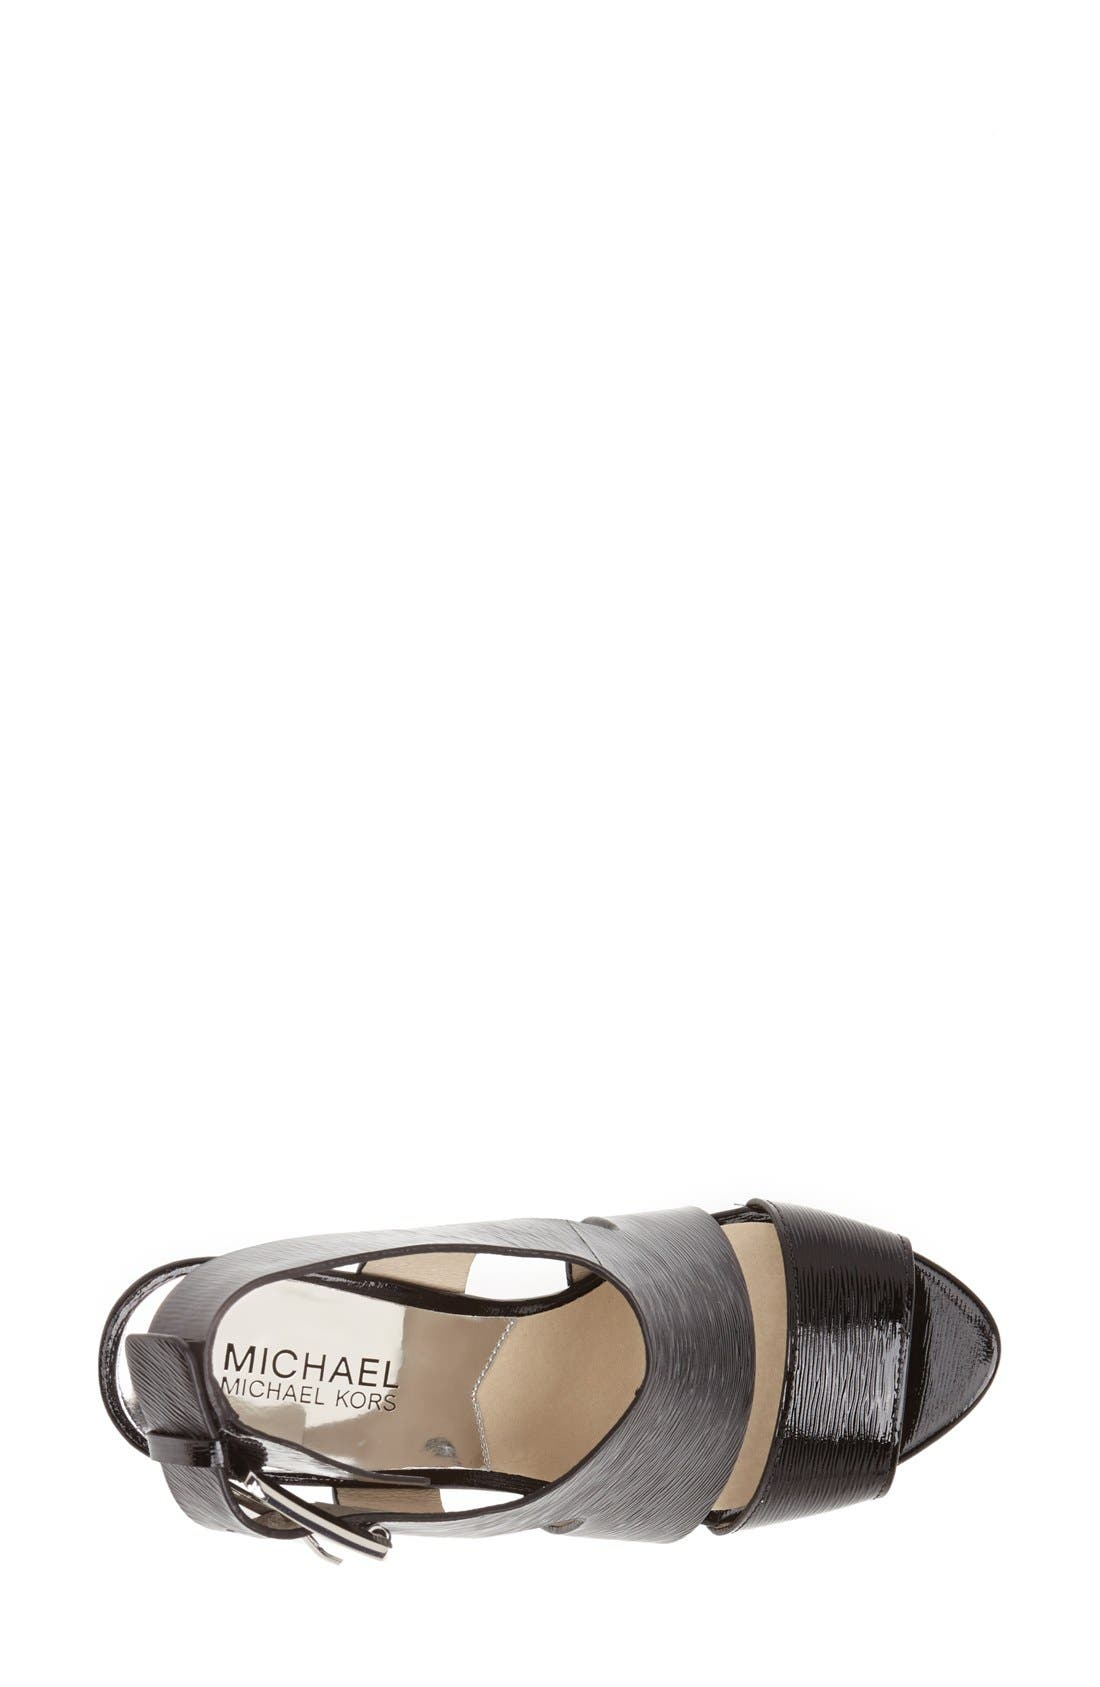 Alternate Image 3  - MICHAEL Michael Kors 'Carla' Saffiano Patent Leather Sandal (Women)